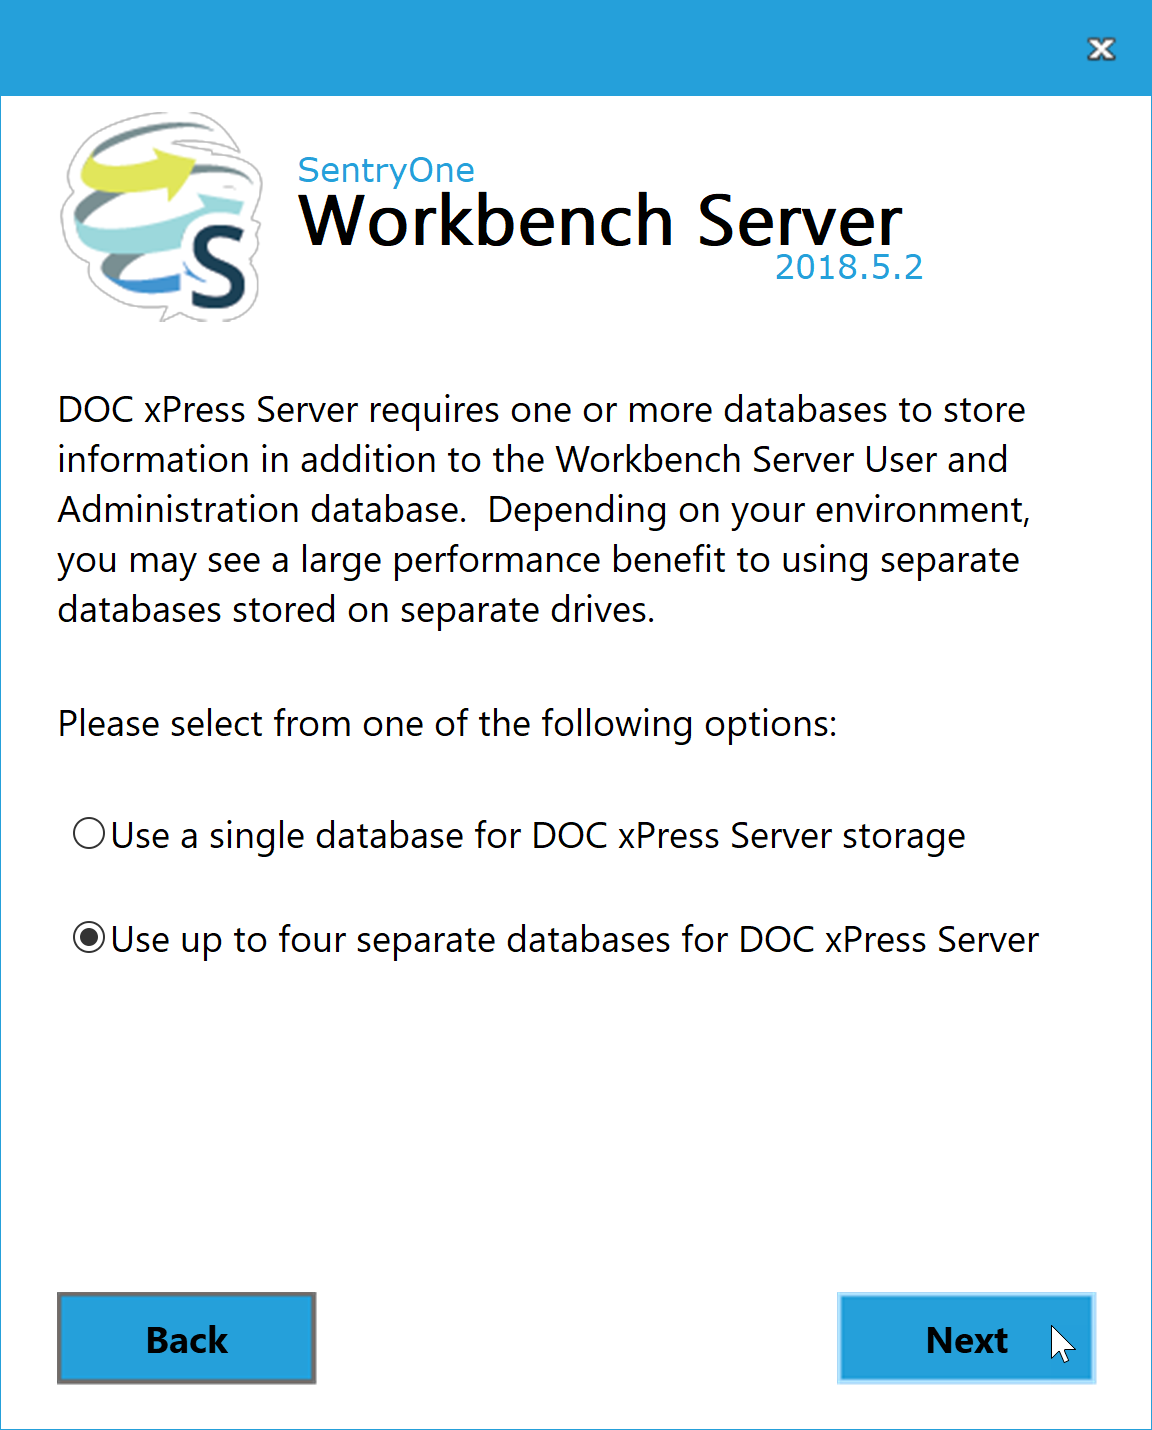 Workbench Server Use up to four databases